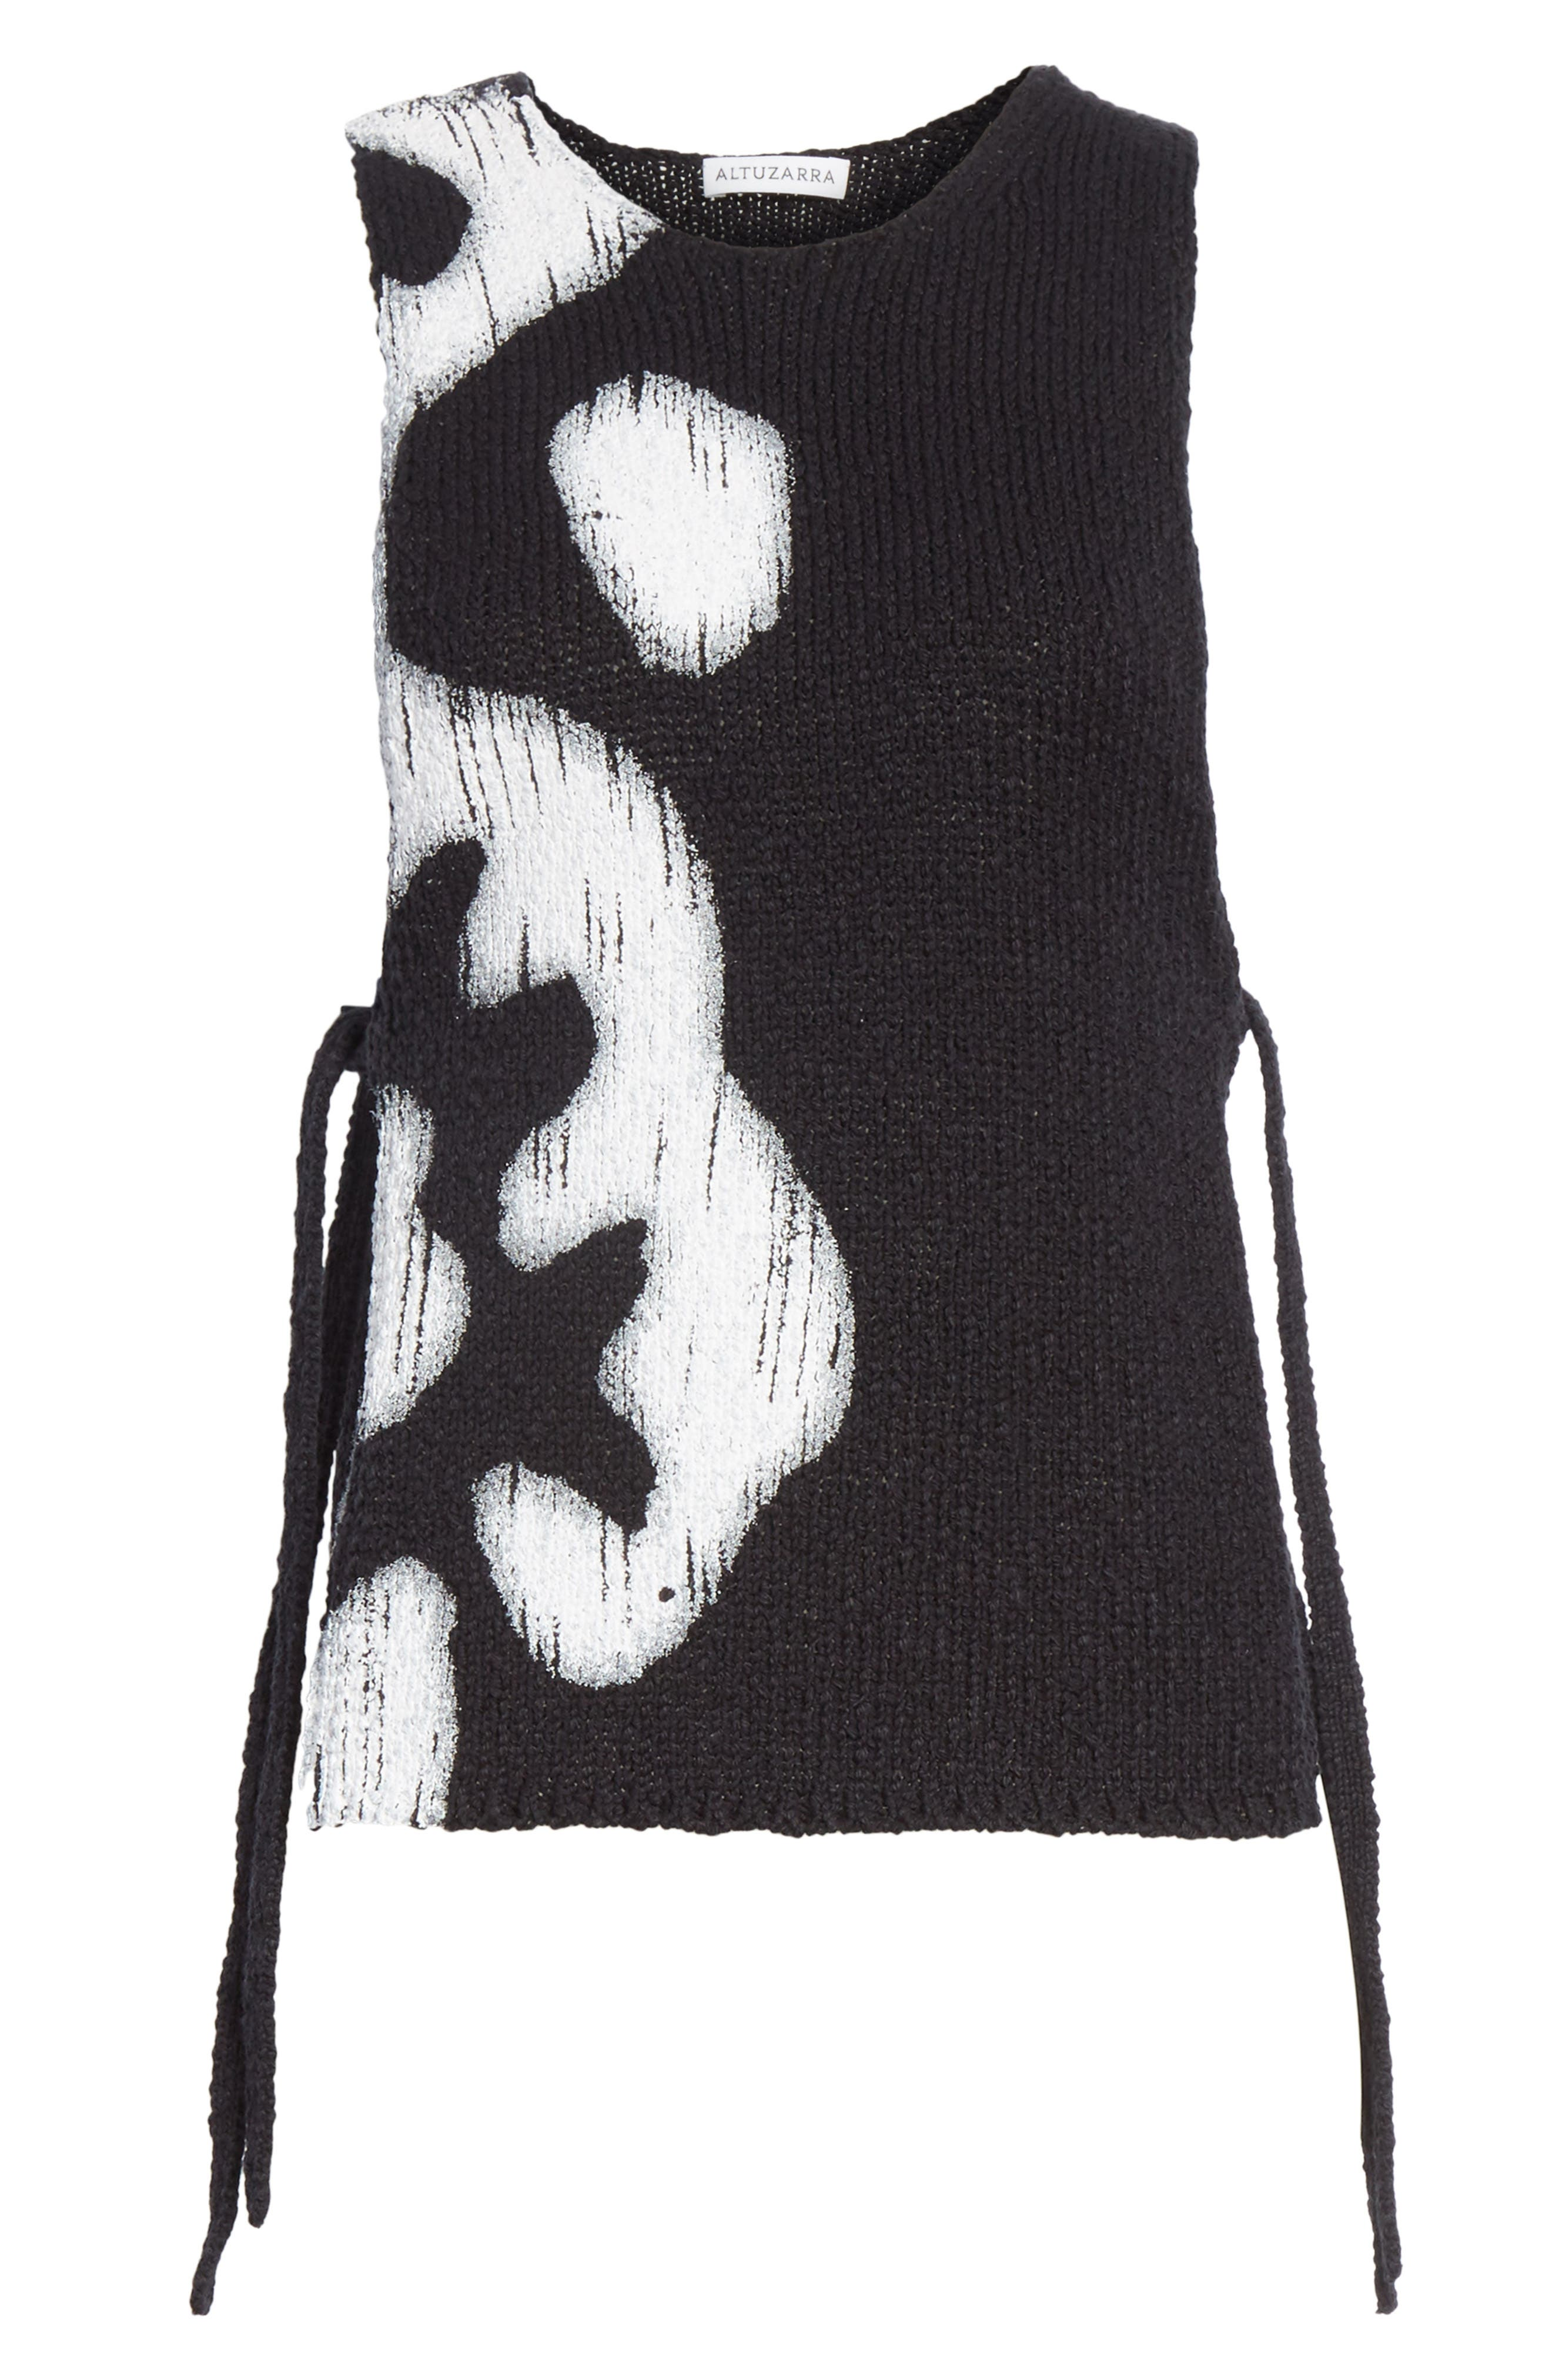 Painted Side Tie Tank Top,                             Alternate thumbnail 6, color,                             001